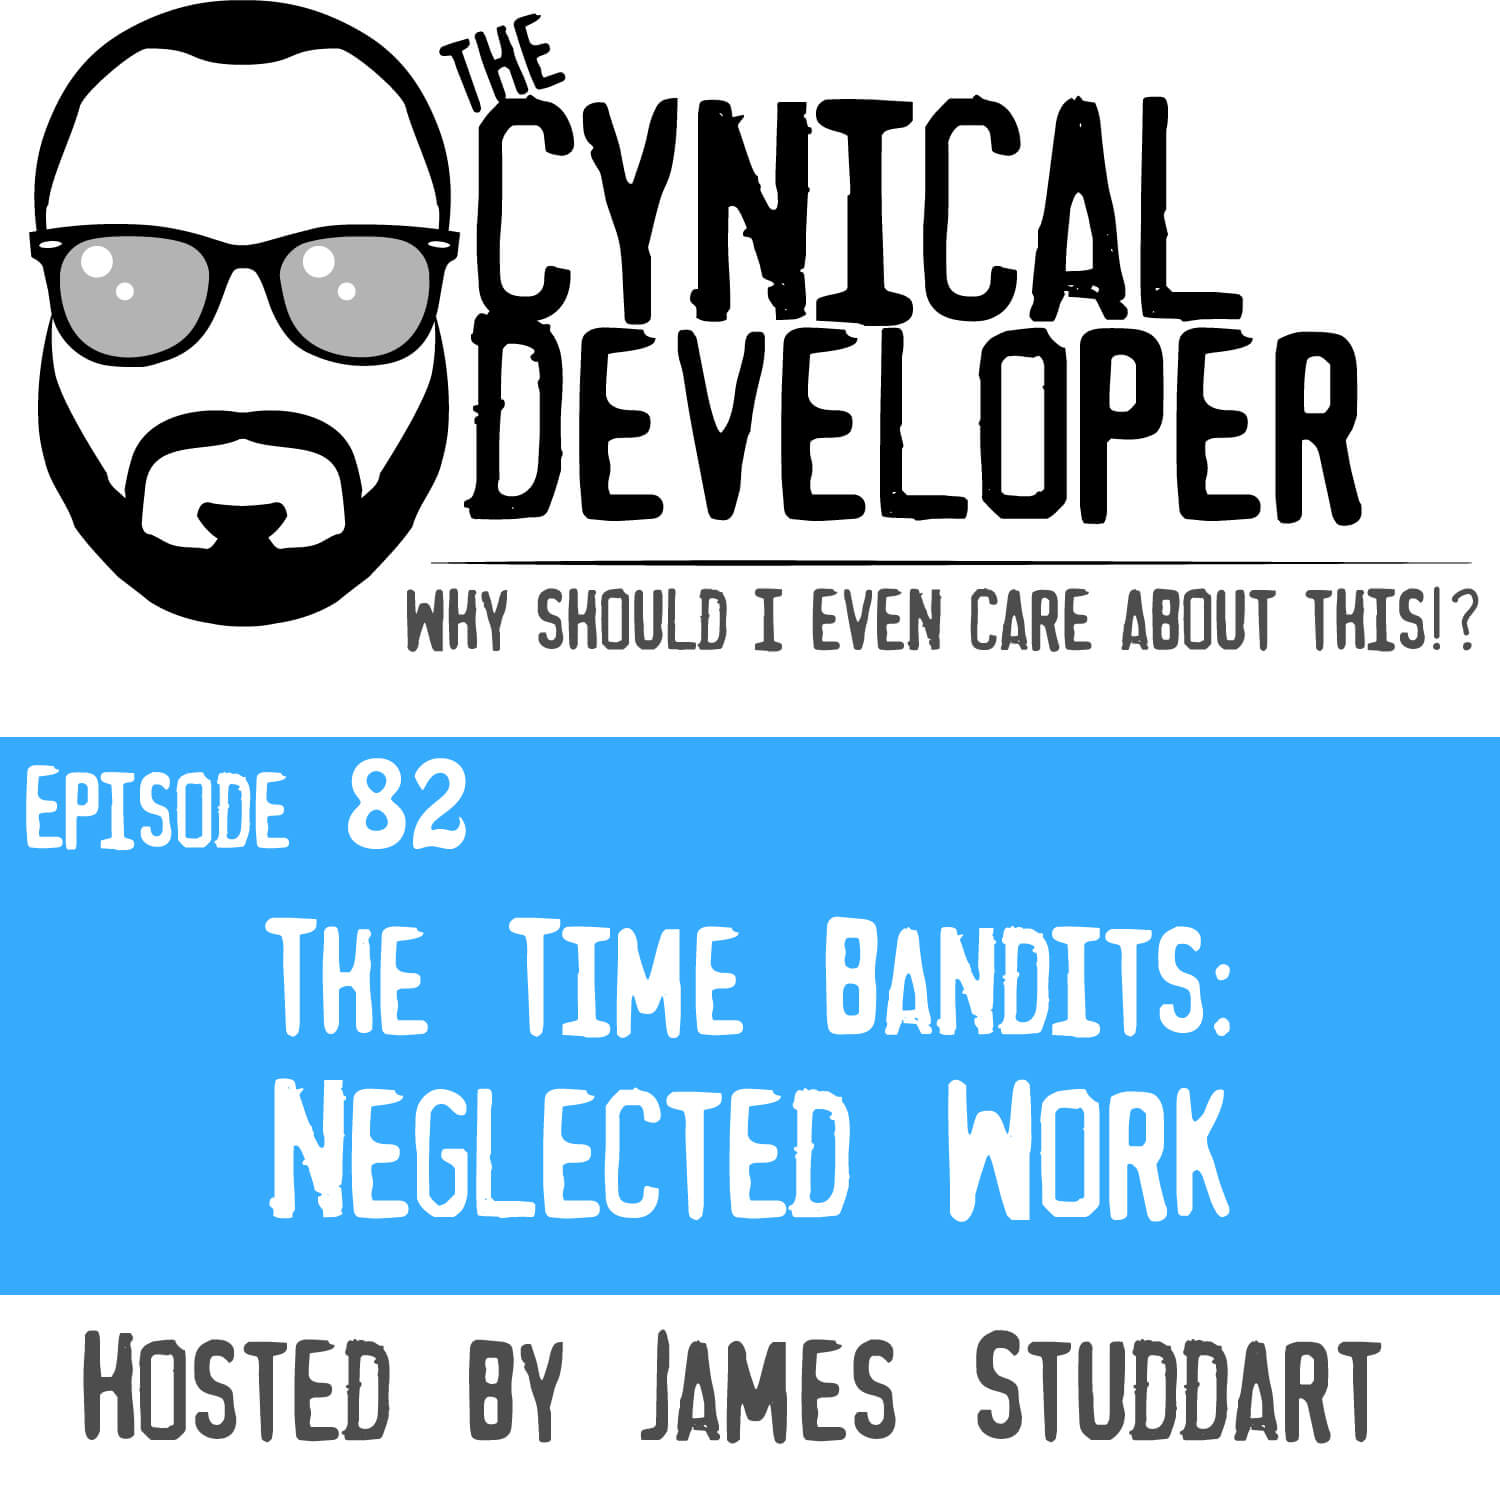 Episode 82 - Neglected Work